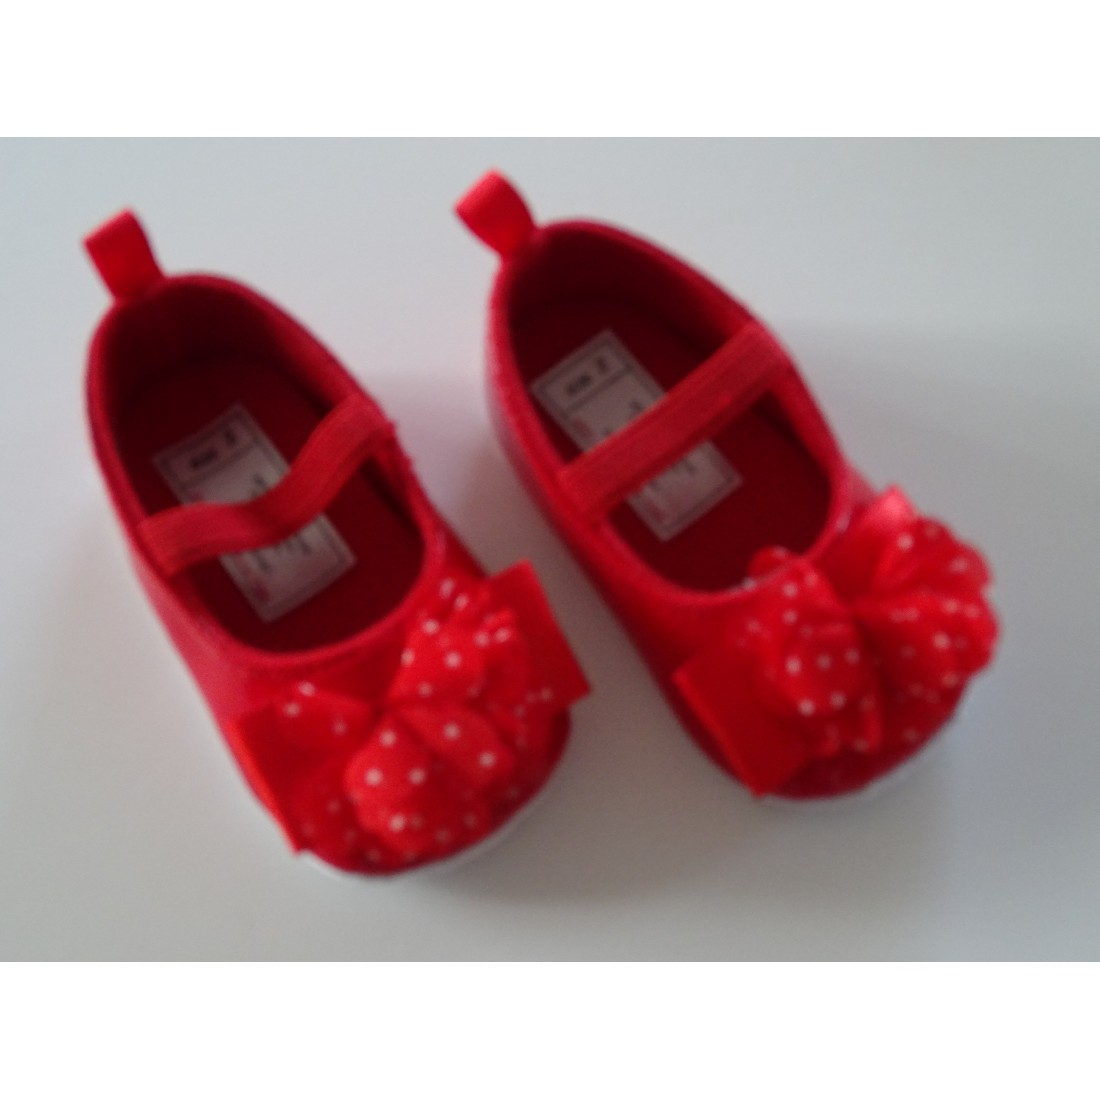 Chaussons vernis rouge rock 'n roll